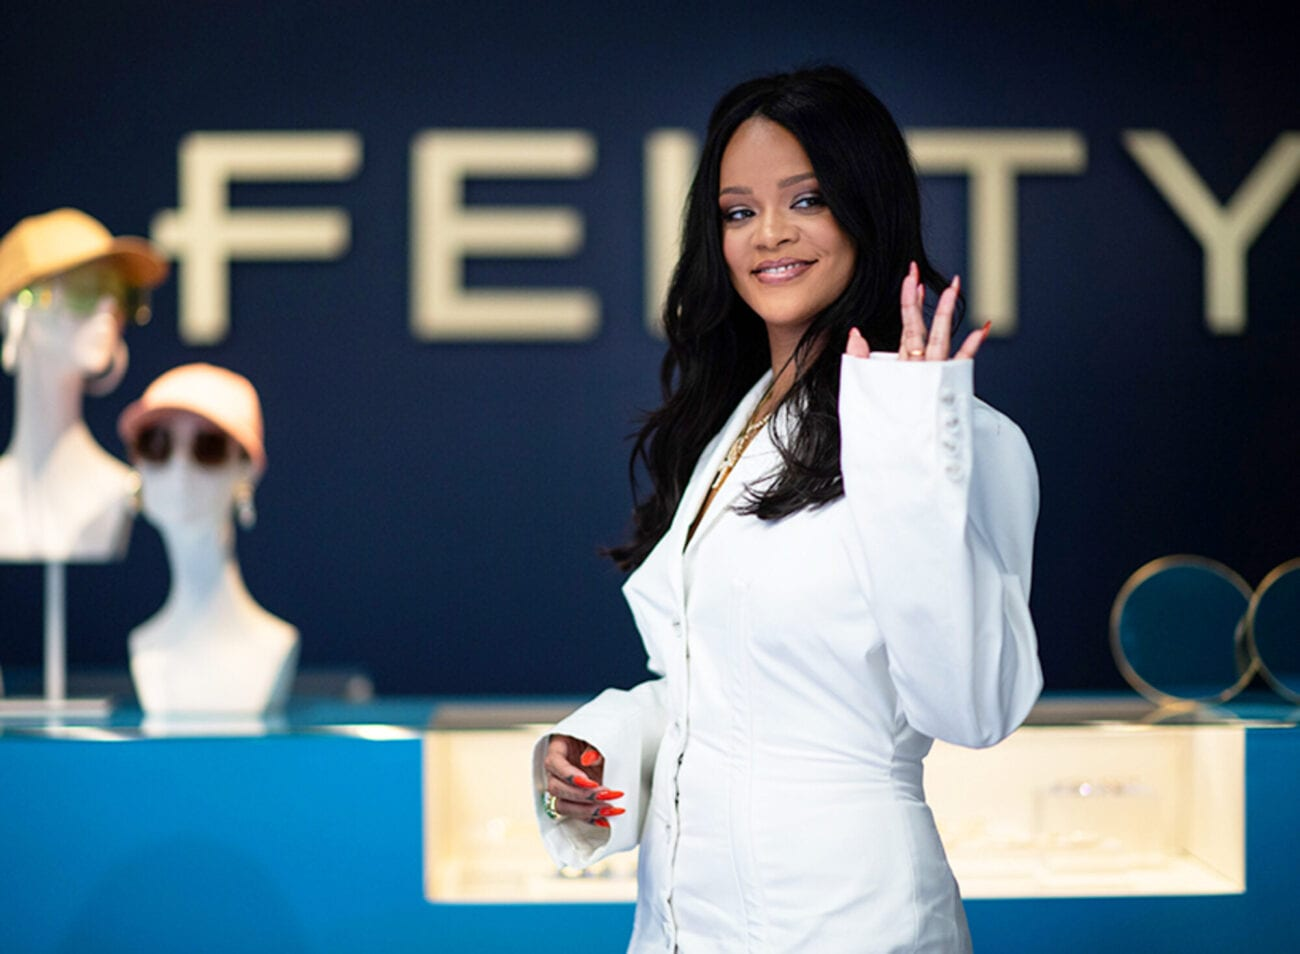 Is musician & businesswoman Rihanna in some hot water in 2020? Let's dive into the latest controversy with Fenty.